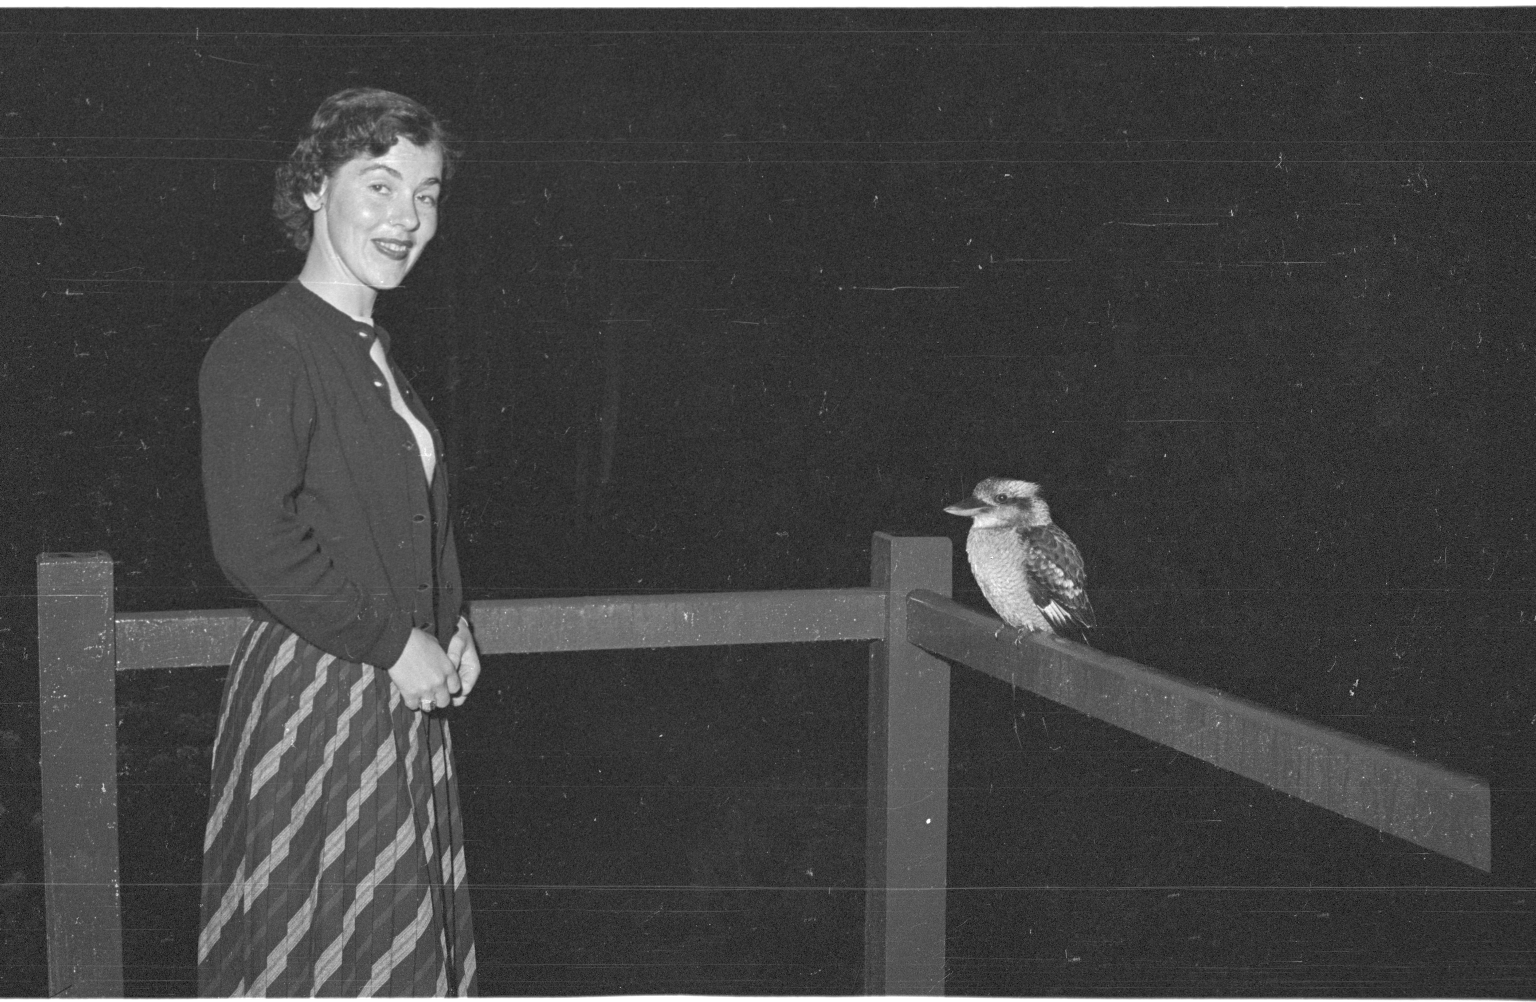 Patricia Bailey Witherspoon and a kookaburra